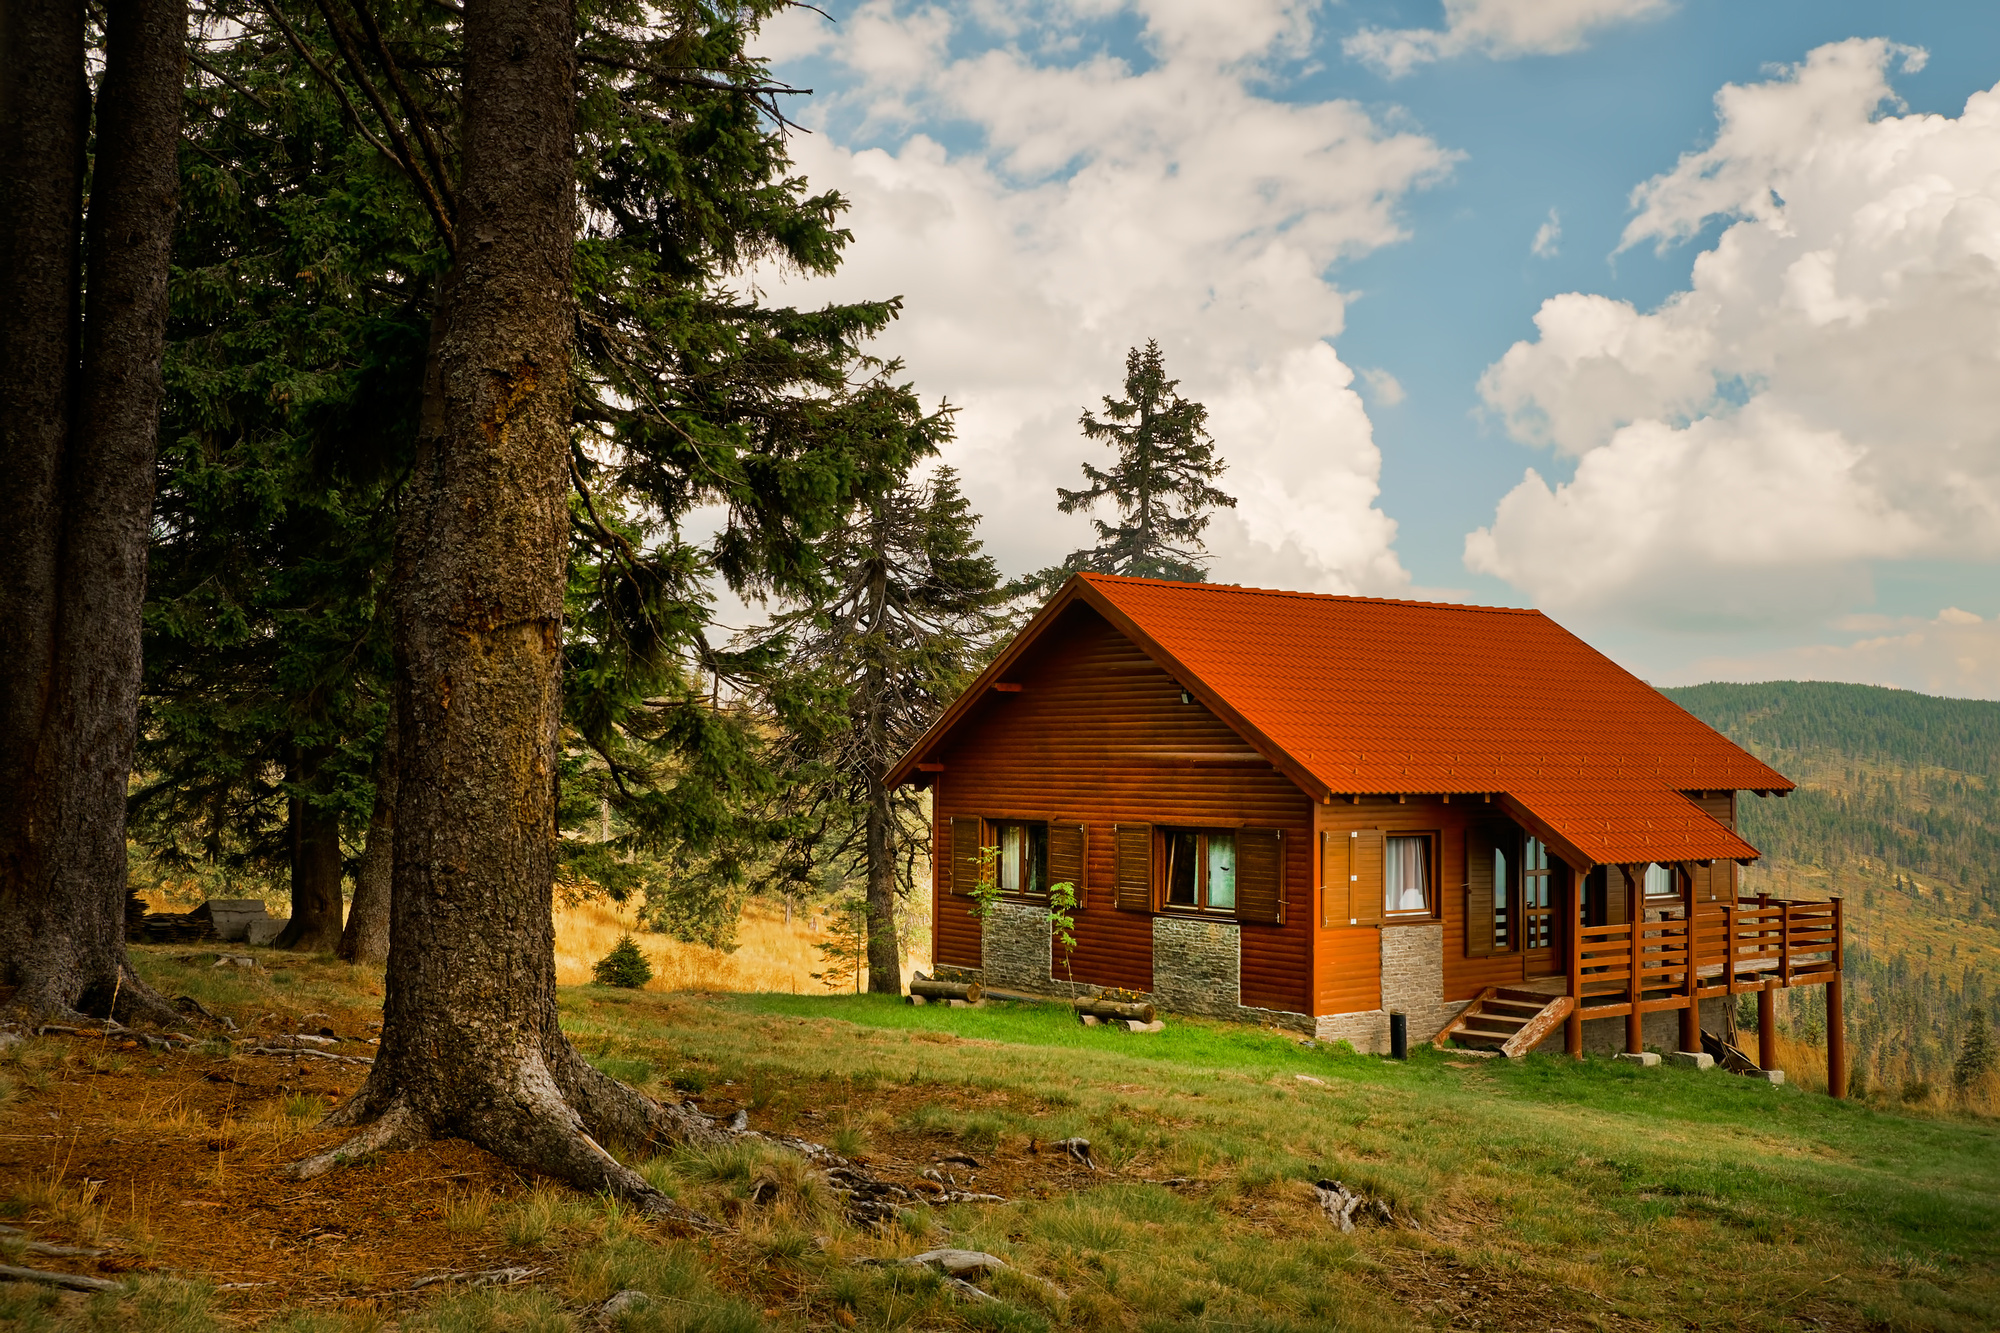 7 benefits of smoky mountain cabins vs hotels for Smoky mountain cabin specials